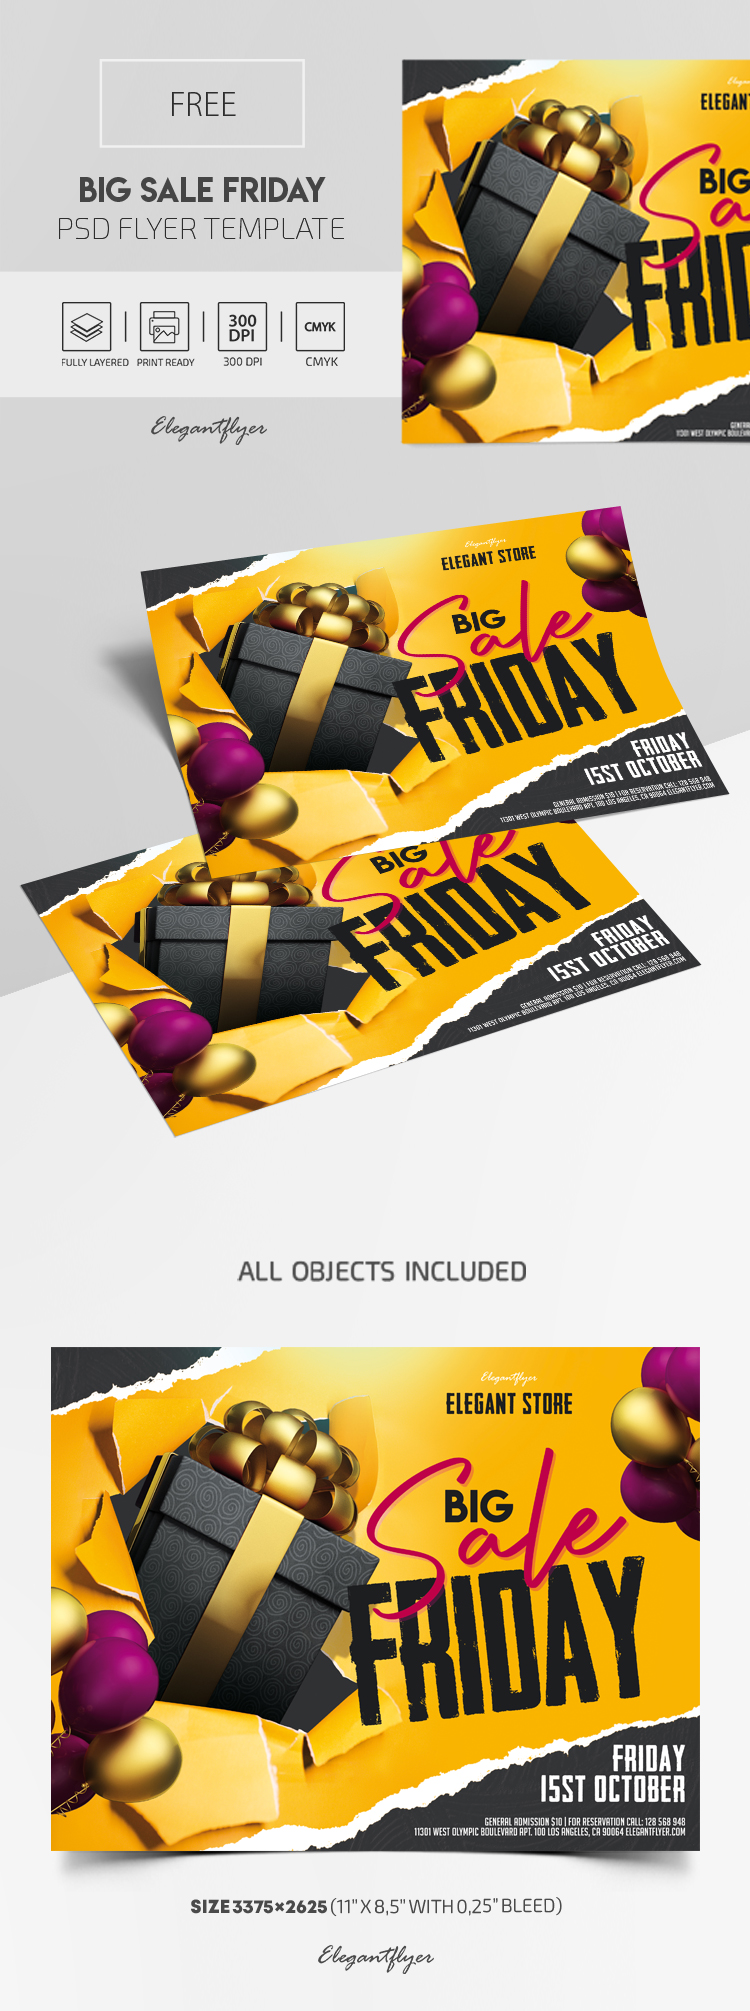 Big Sale Friday – Free Flyer PSD Template